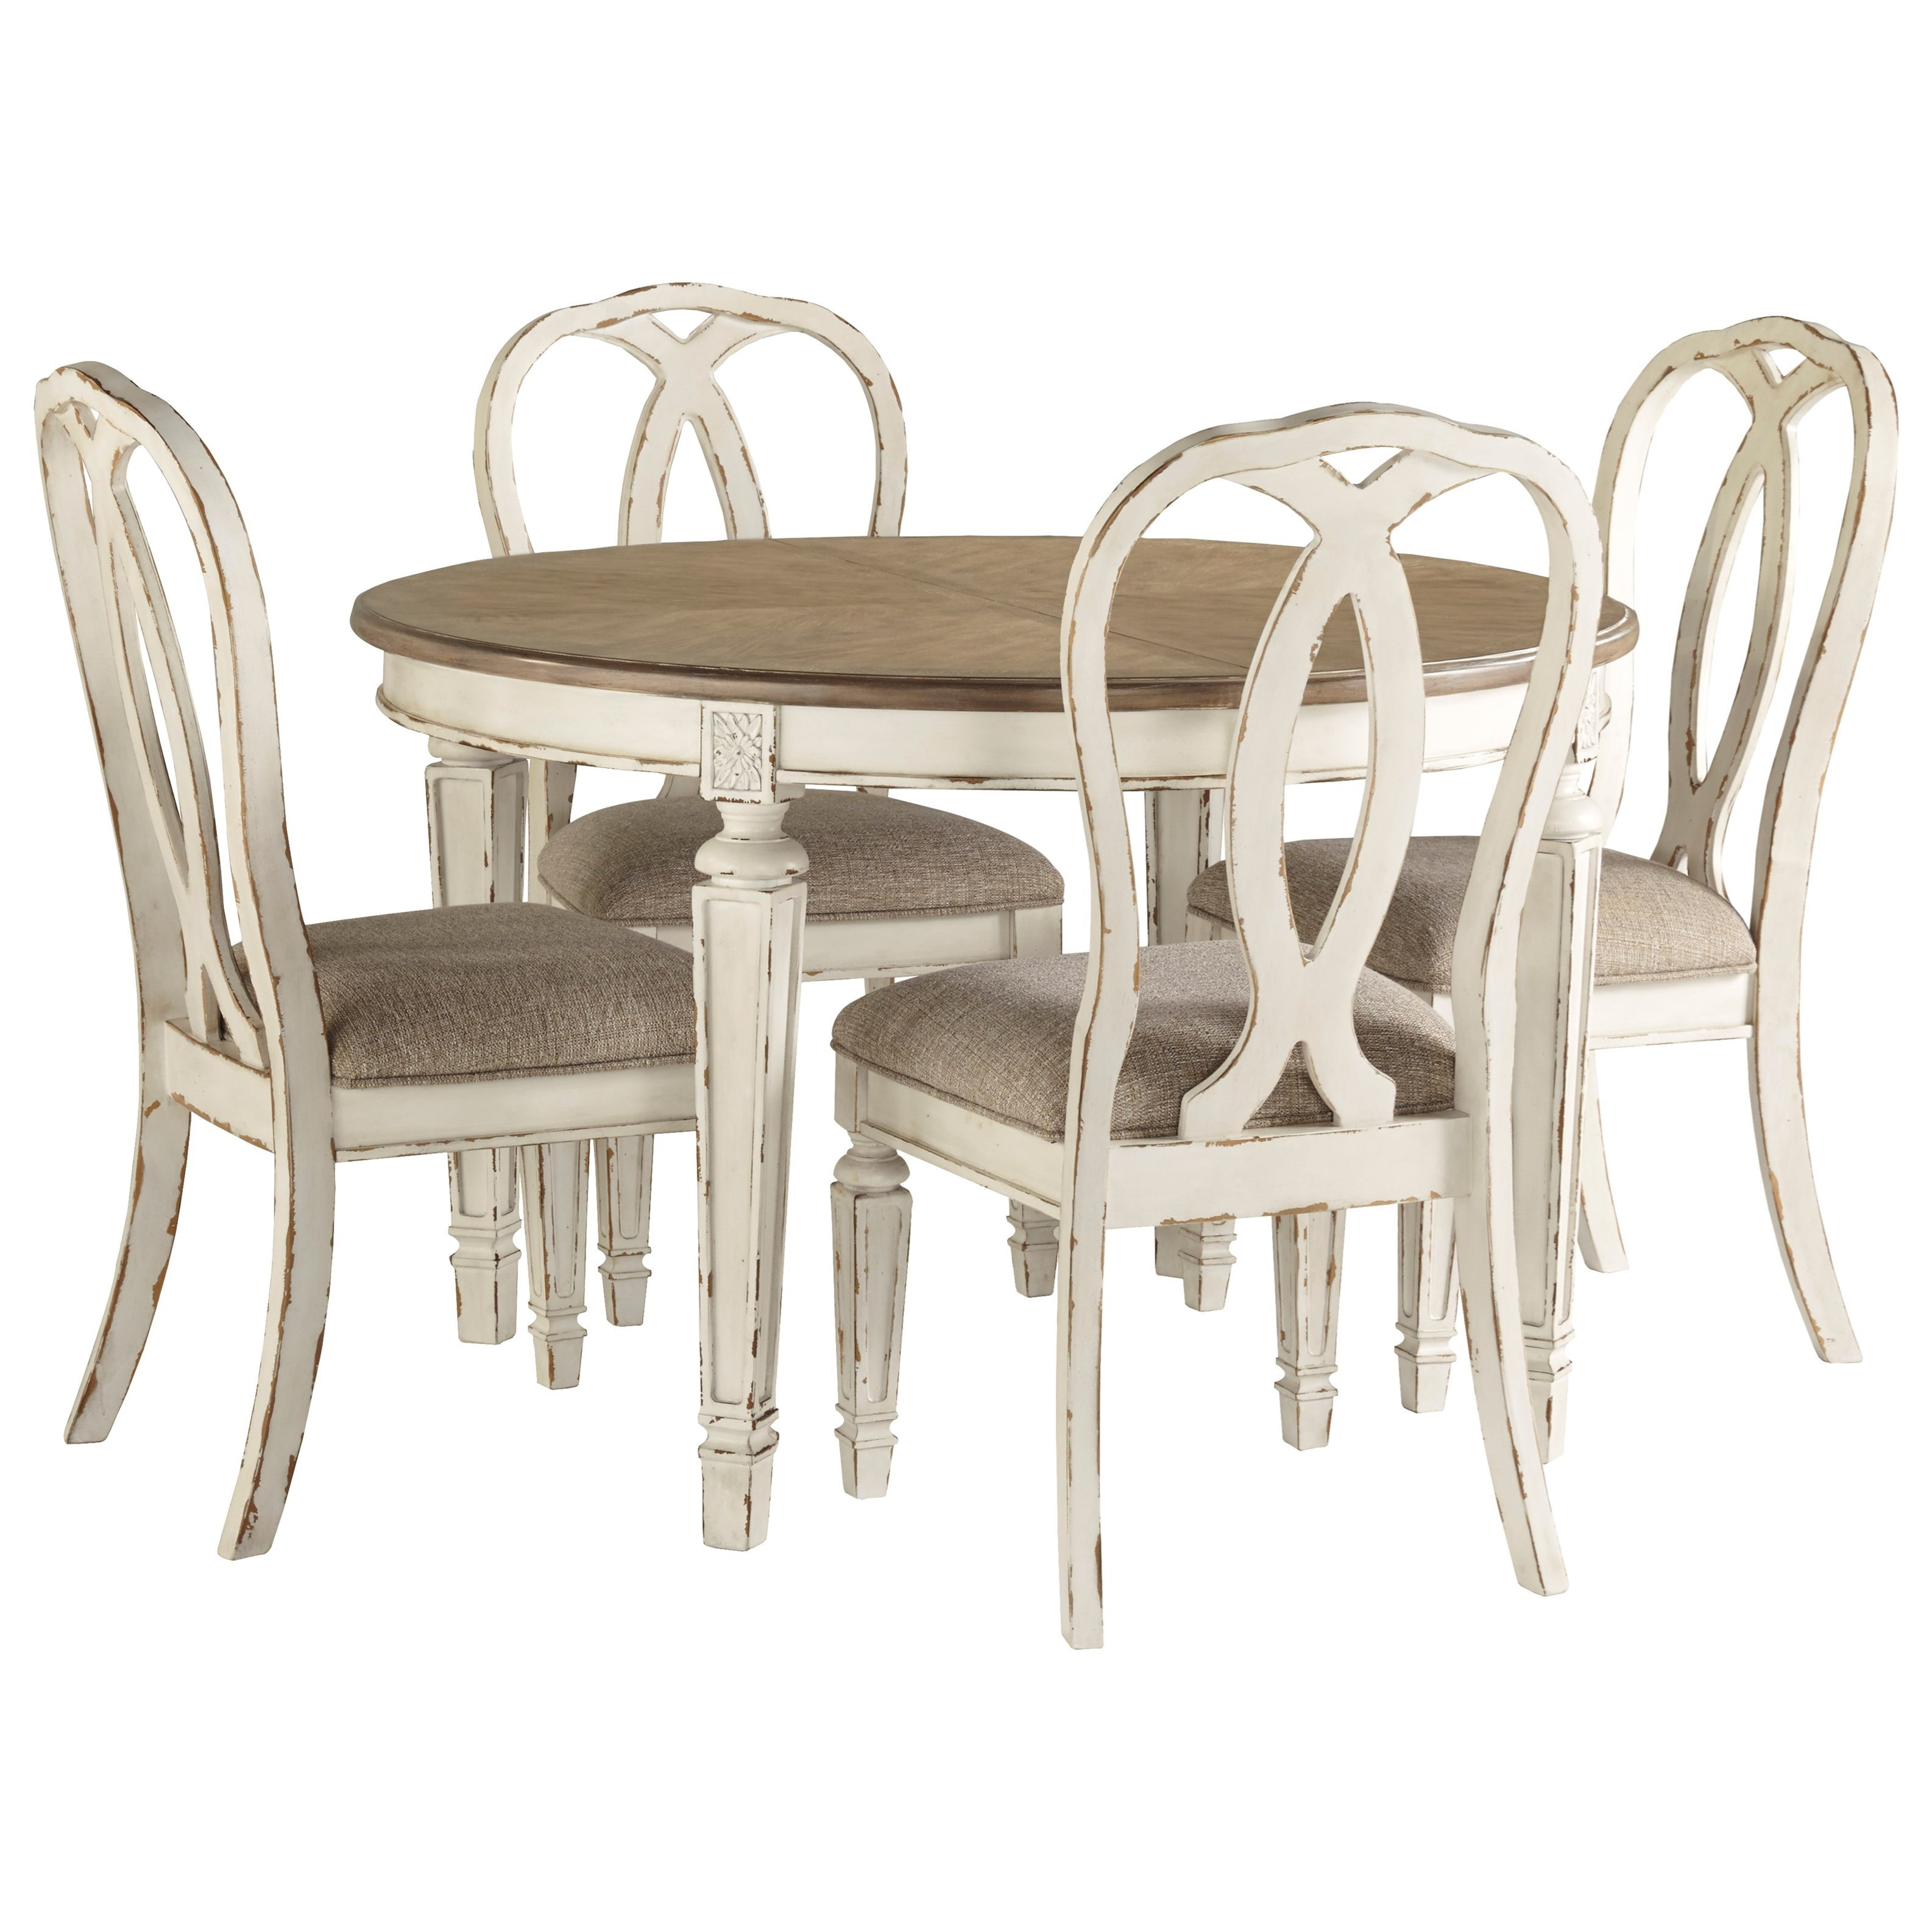 Realyn 5-Piece Table and Chair Set by Ashley (Signature Design) at Johnny Janosik